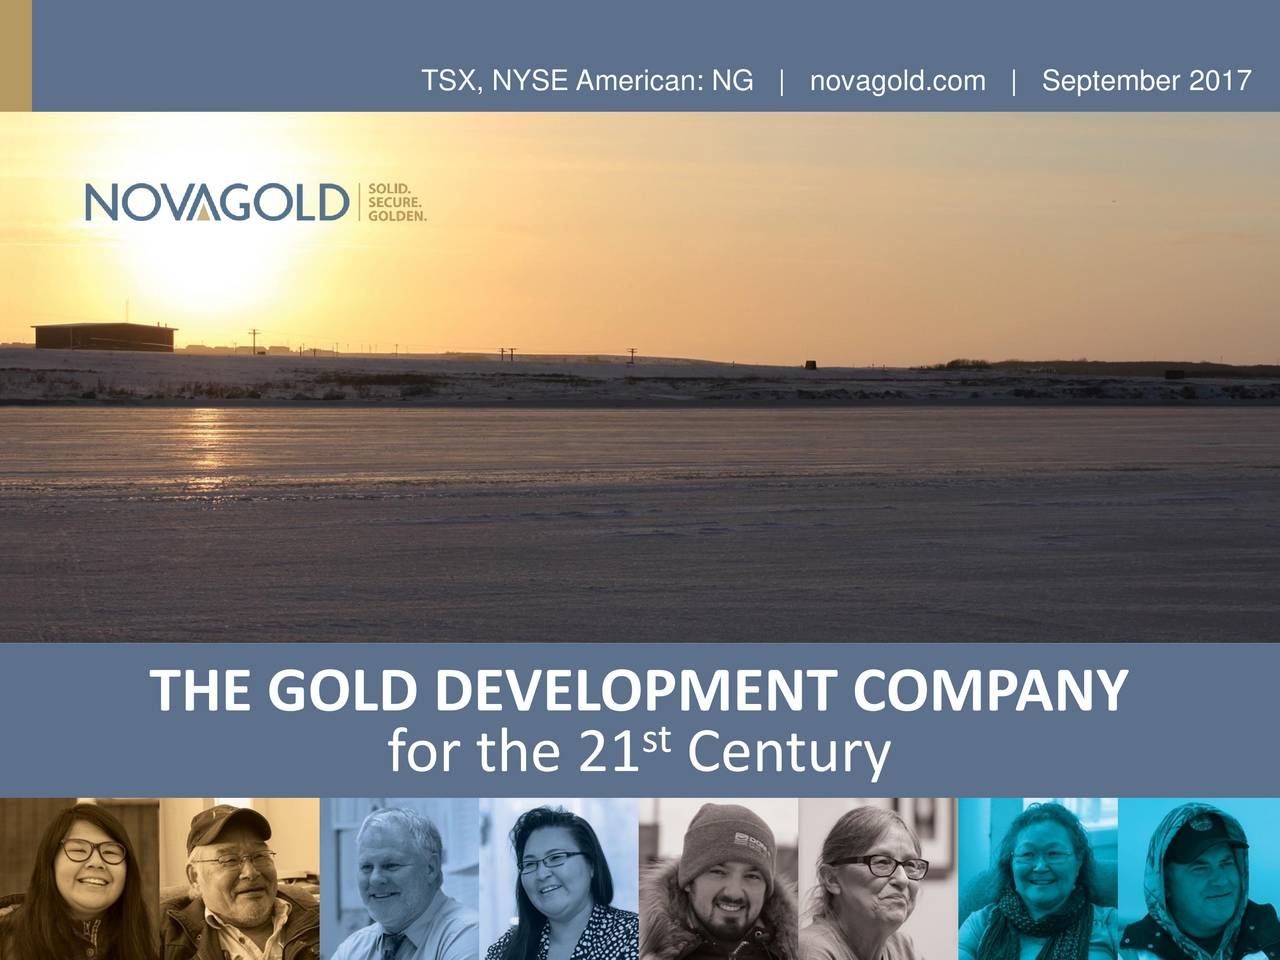 THE GOLD DEVELOPMENT COMPANY for the 21 Century